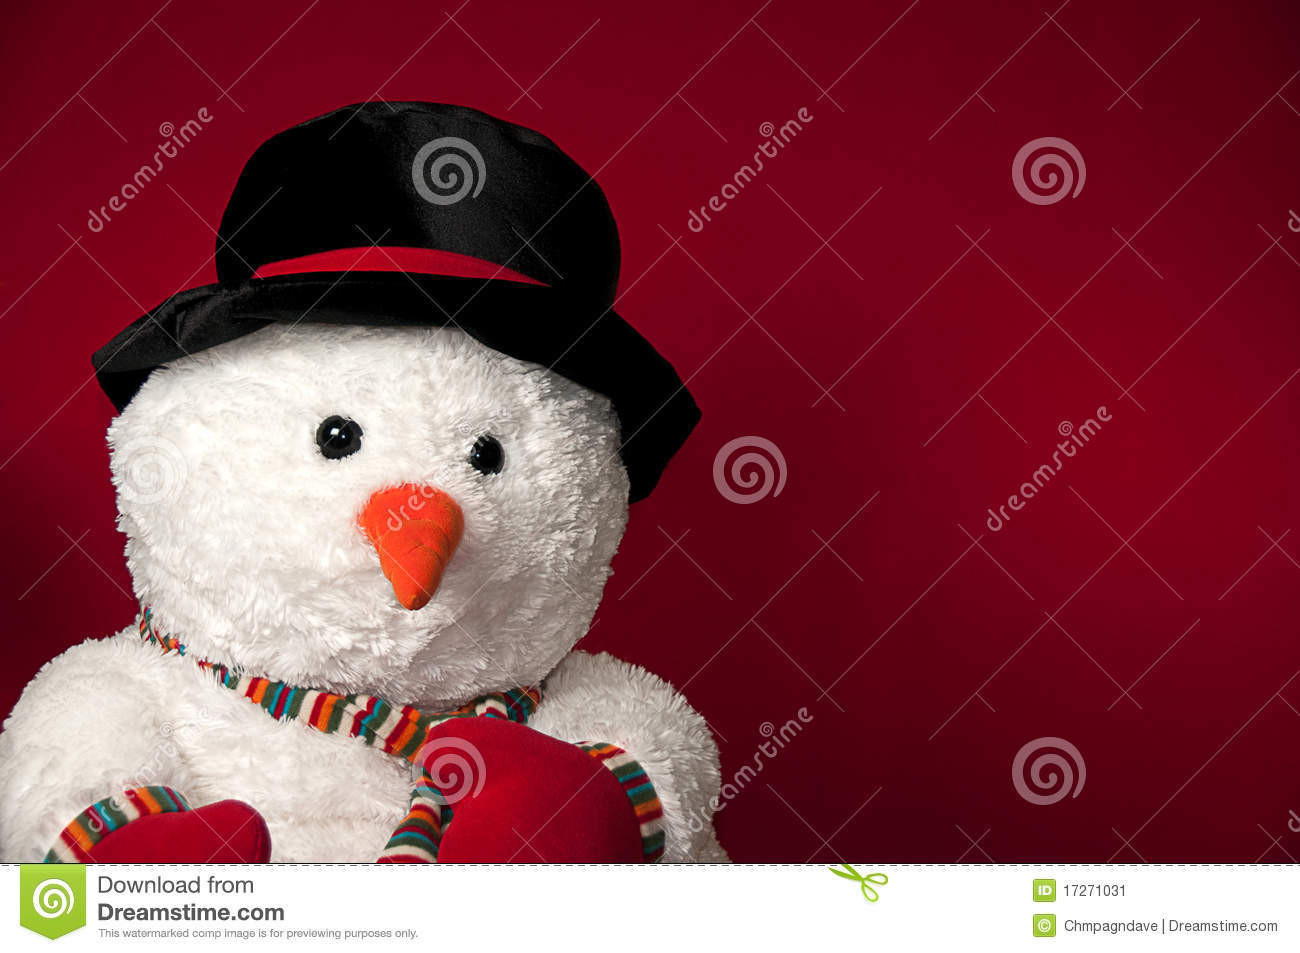 snowman placed on red background meant to allow space for verbage and